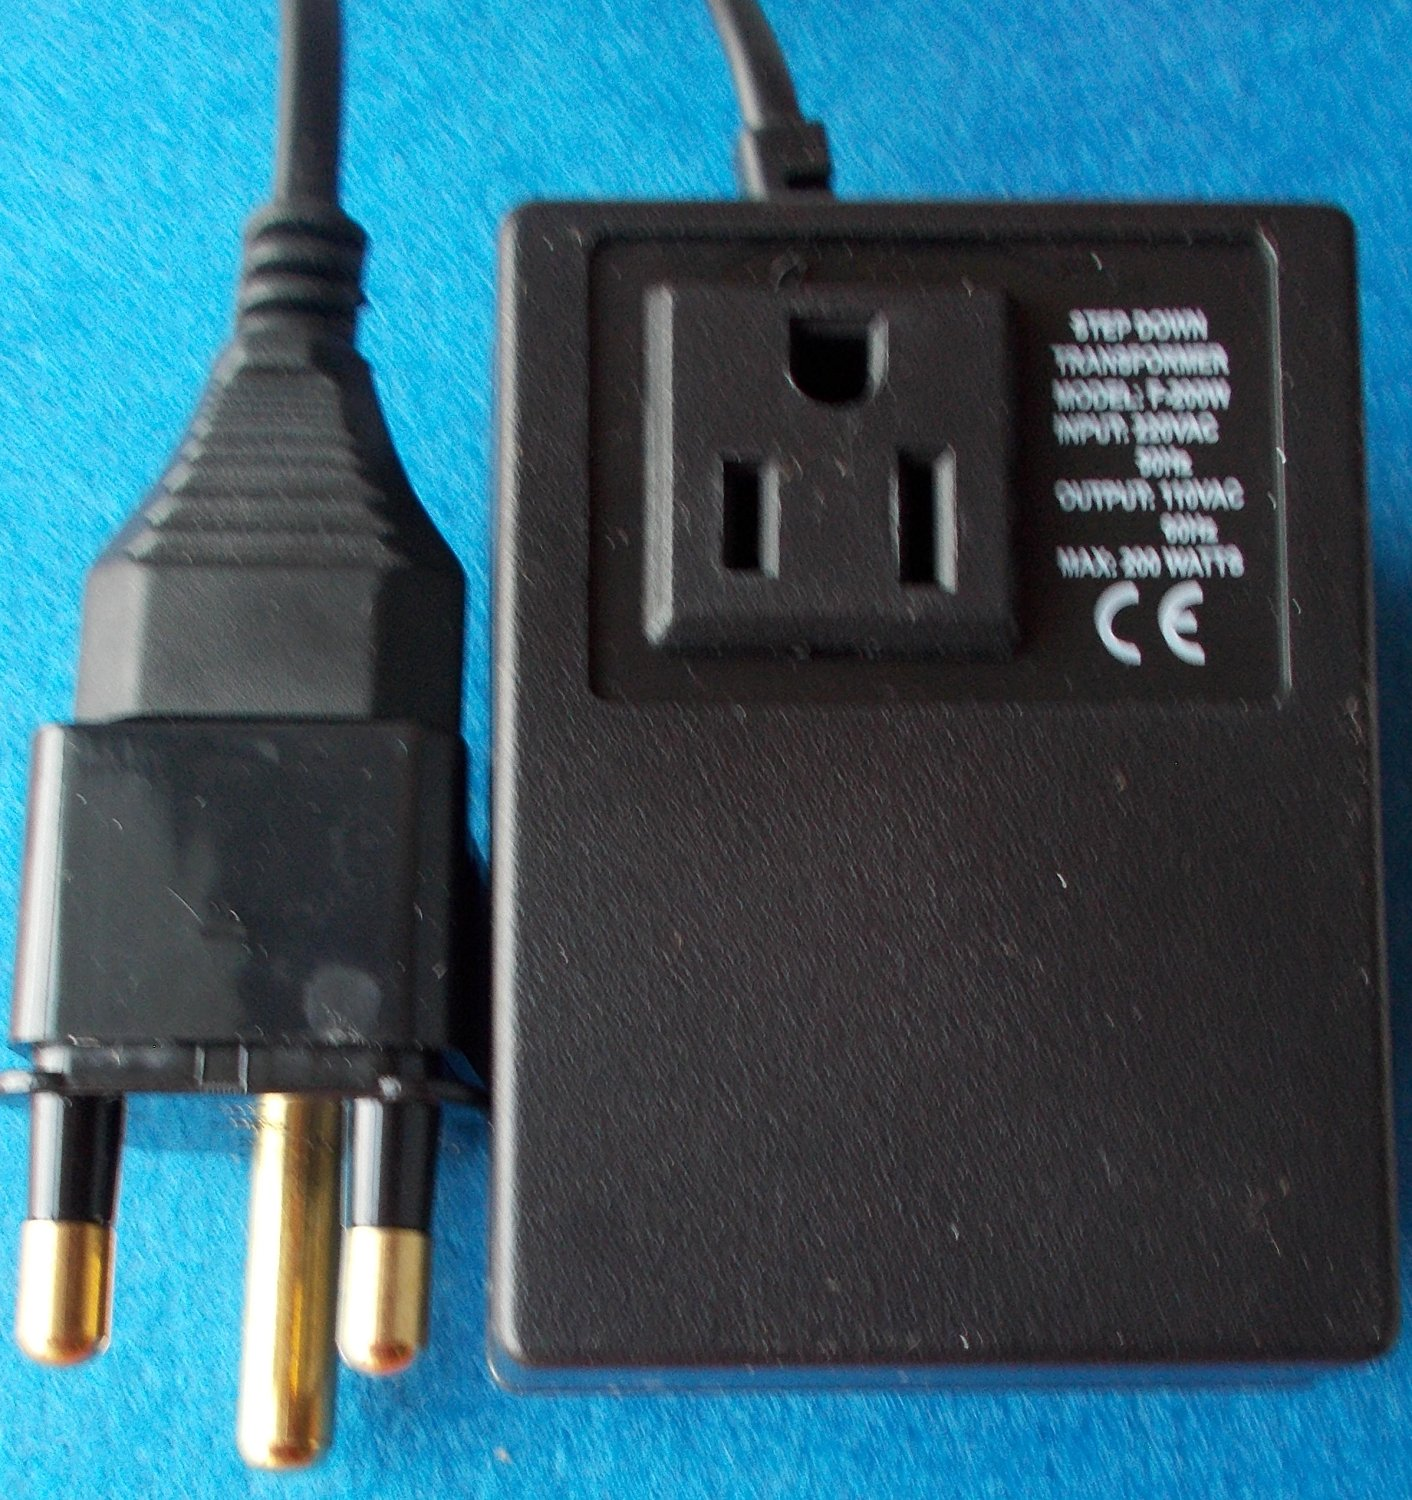 200SA - SOUTH AFRICA , SA, DELUXE AND HEAVEY-DUTY 220V/240Volt Step Down Travel Voltage Transformer Converter To Use USA Products in SOUTH AFRICA Good For Laptops, Toothbrush, I-phone Chargers, Cell-phone Chargers & more 0-200 Watts Appliances & Electronics taking from USA, Canada Or any other